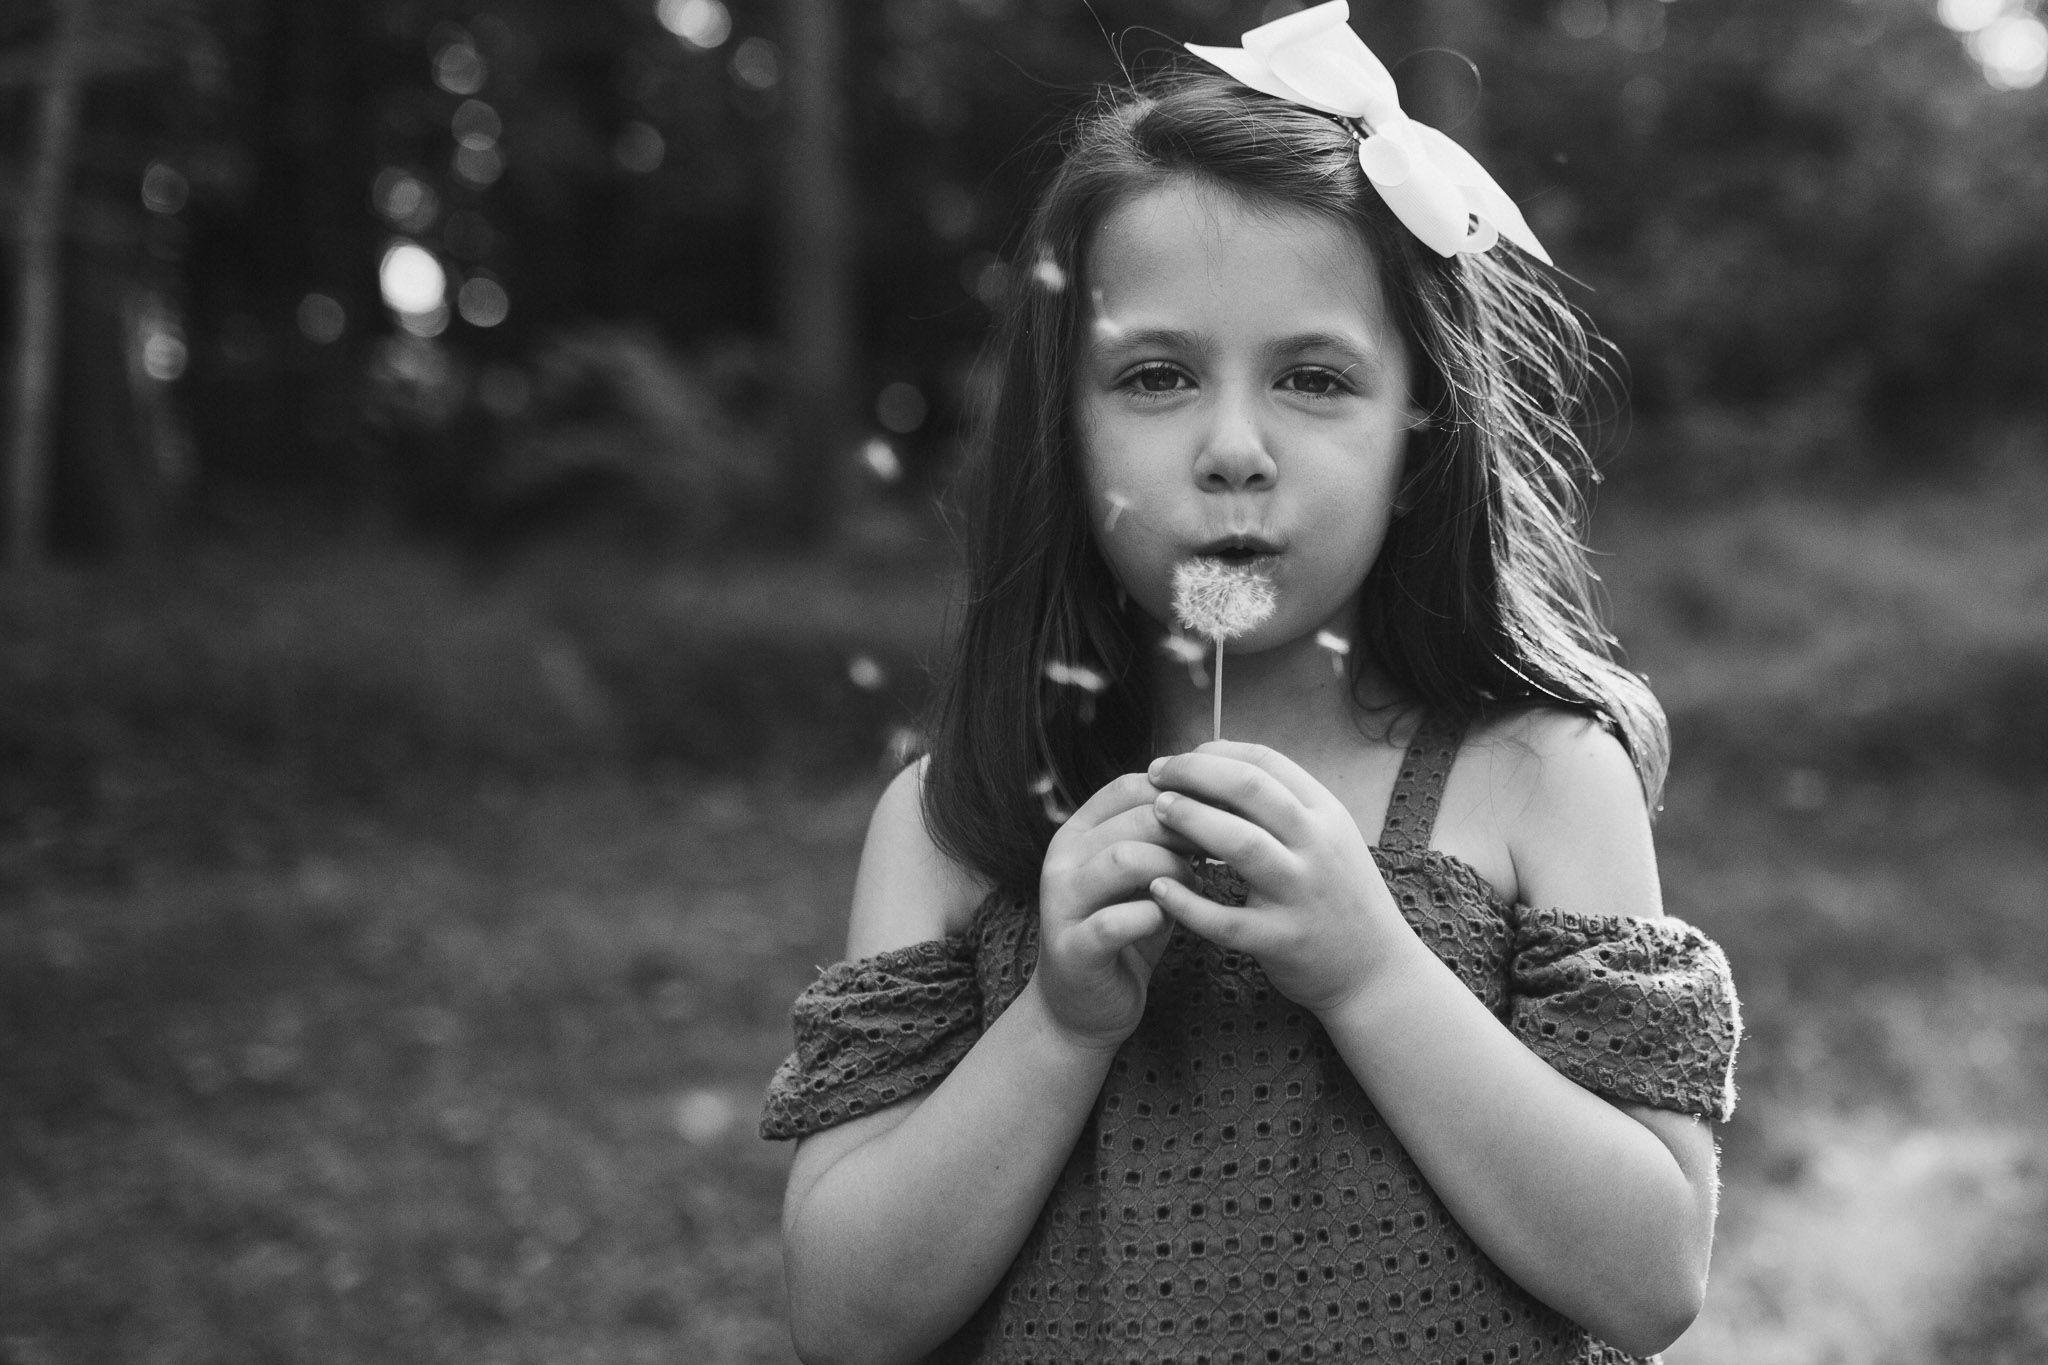 Black and white; girl blowing a dandelion